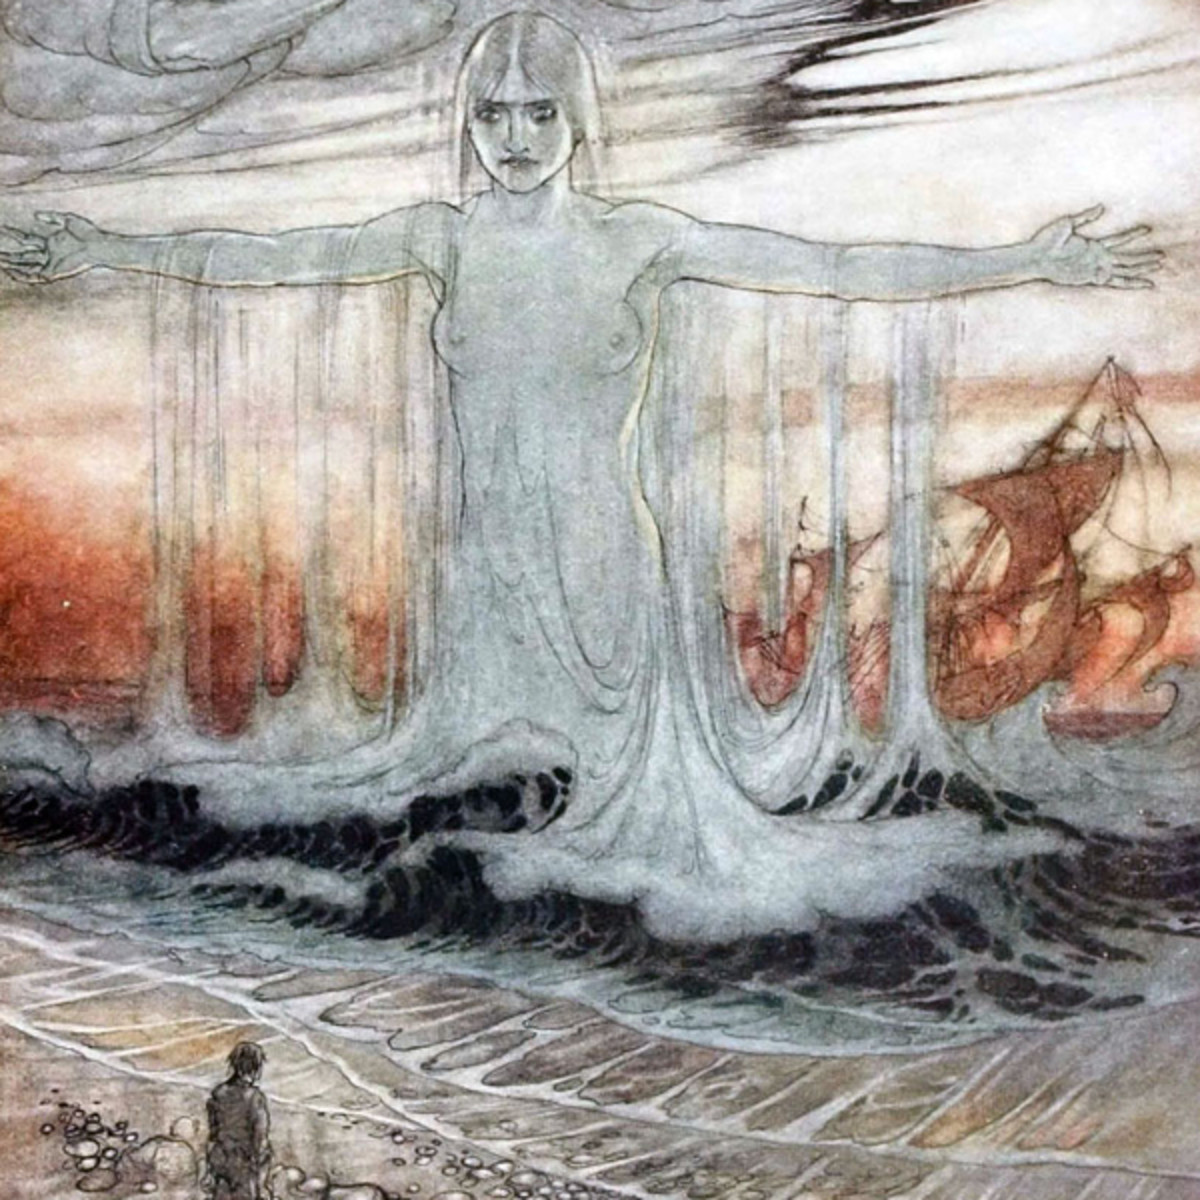 "Here we show a portion of 'The Shipwrecked Man and the Sea' - a design by Arthur Rackham from his suite published in ""Aesop's Fables"" (1912)."